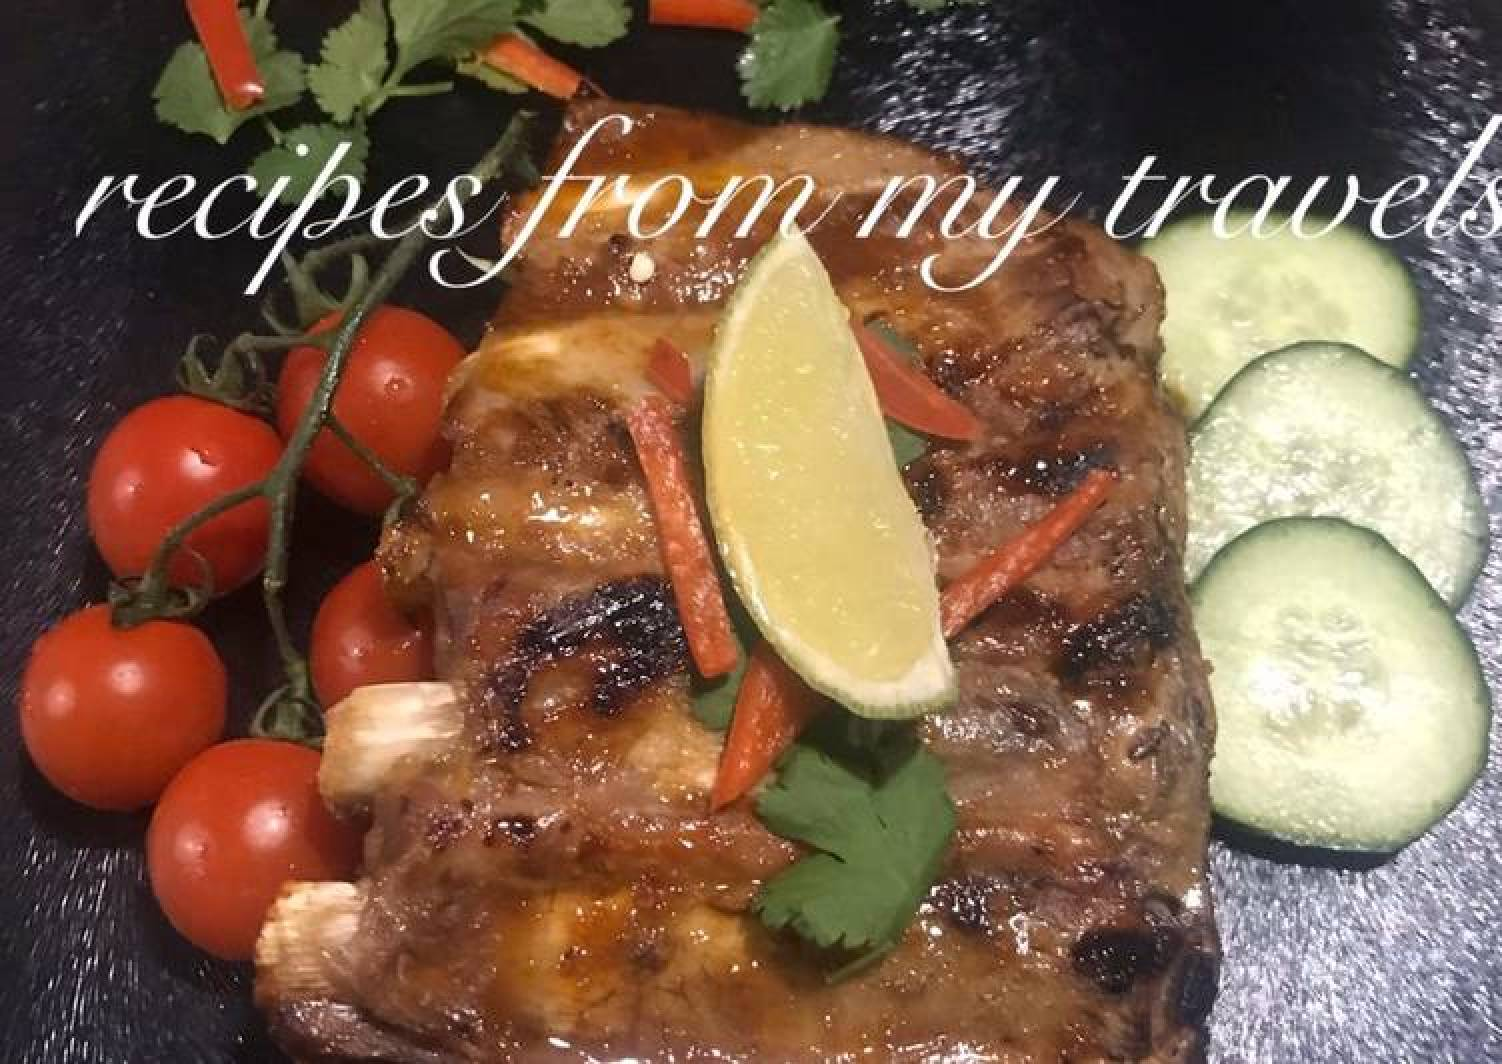 Whisky (non-alcoholic) infused pork ribs with chilli & lime glaze